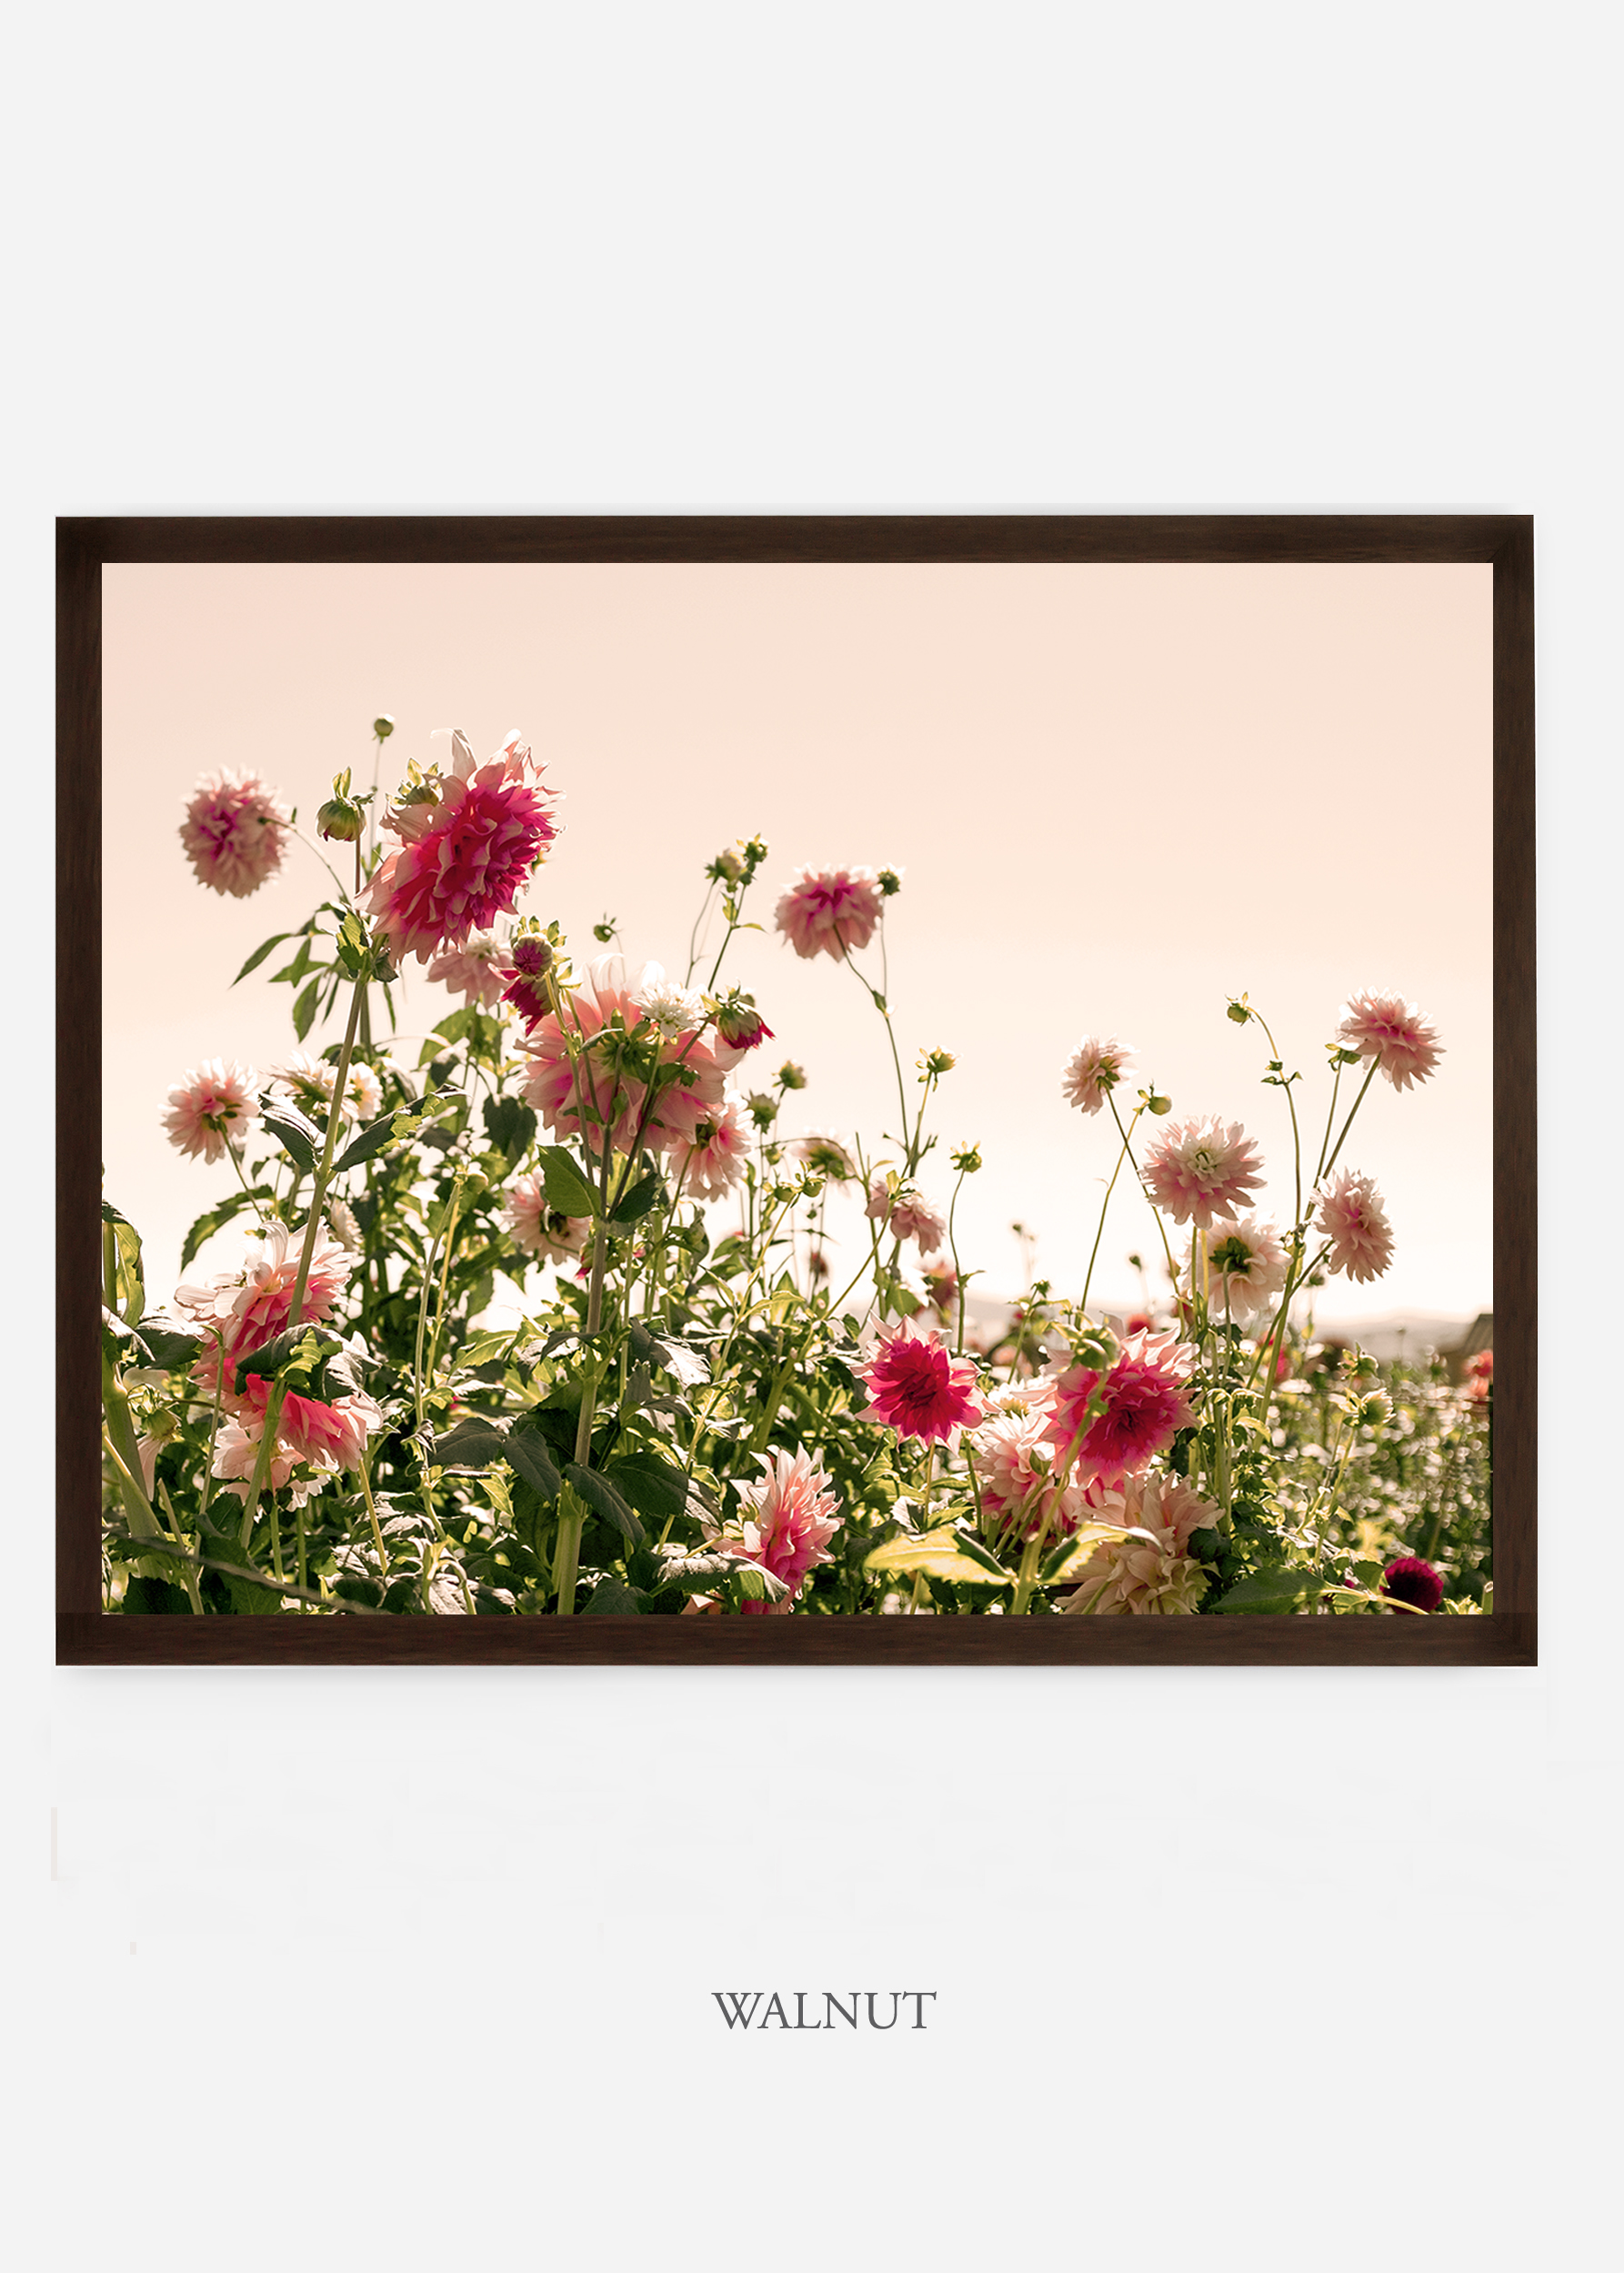 NoMat-DarkWalnutFrame-DahliaNo.7-Wilder-California-Art-Floral-Home-decor-Prints-Dahlia-Botanical-Artwork-Interior-design.jpg